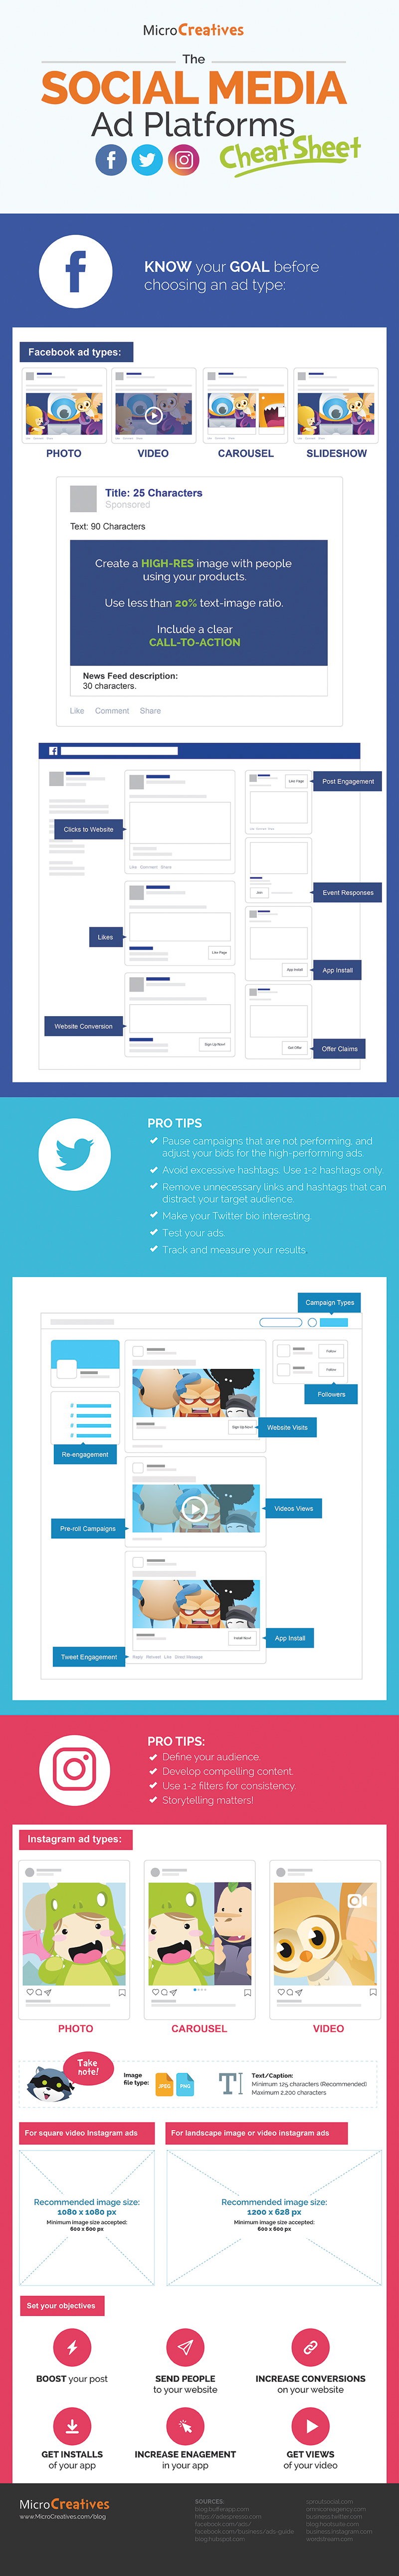 How to Create Ads for Social Media Platforms - Infographic